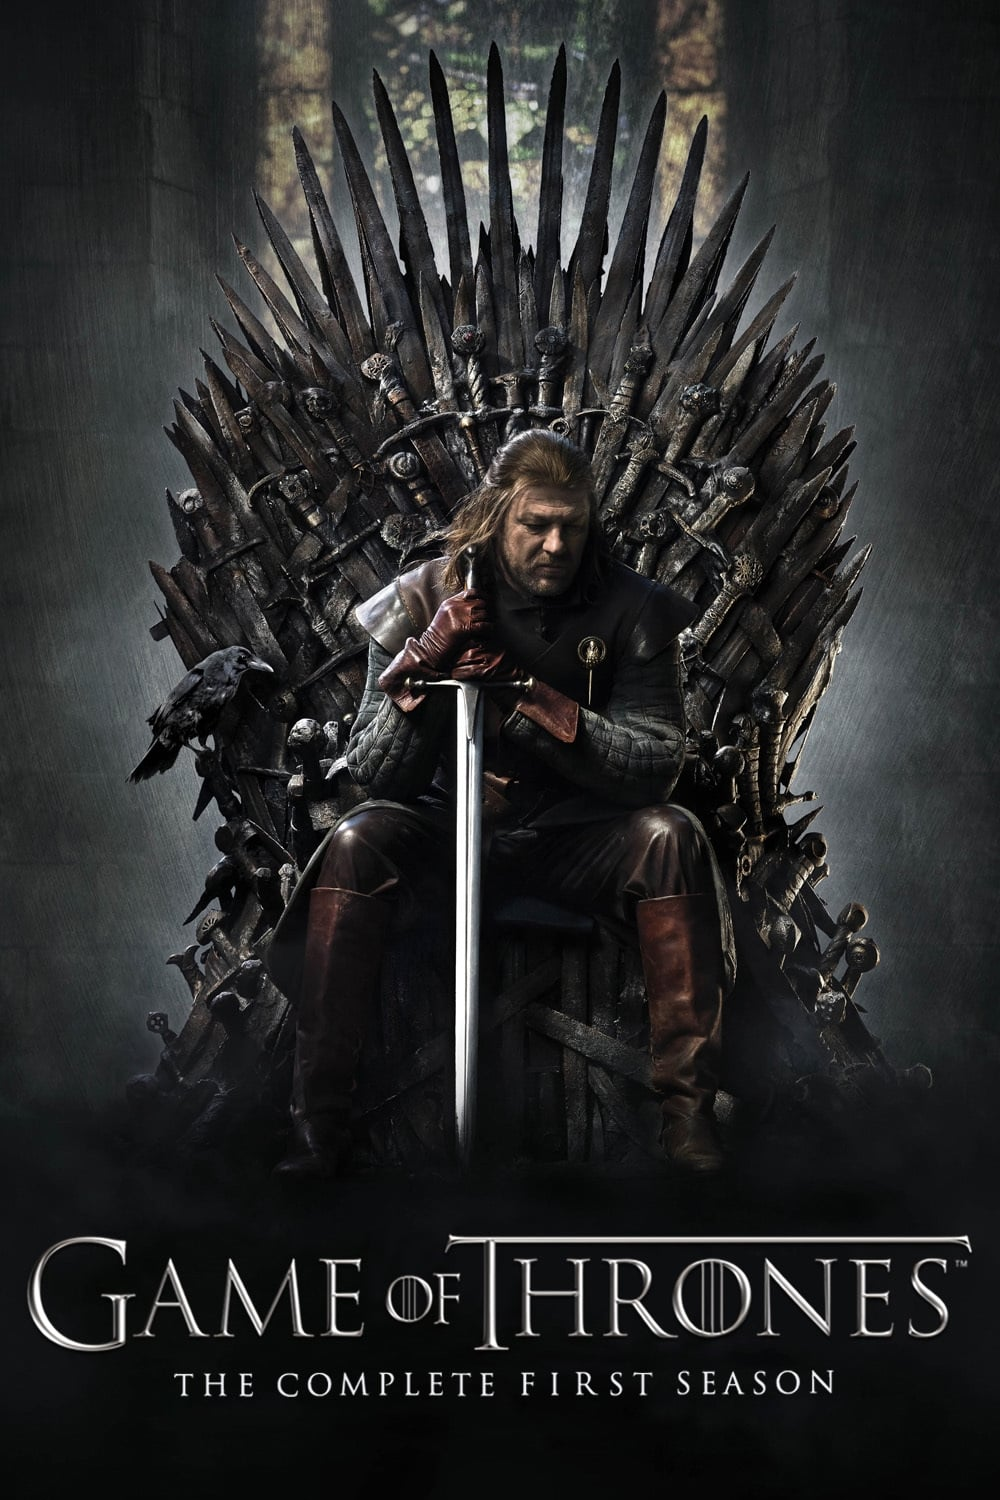 http://gzhqhyregc.com/game-of-thrones-1a-temporada-2011-bdrip-bluray-720p-torrent-dual-audio/